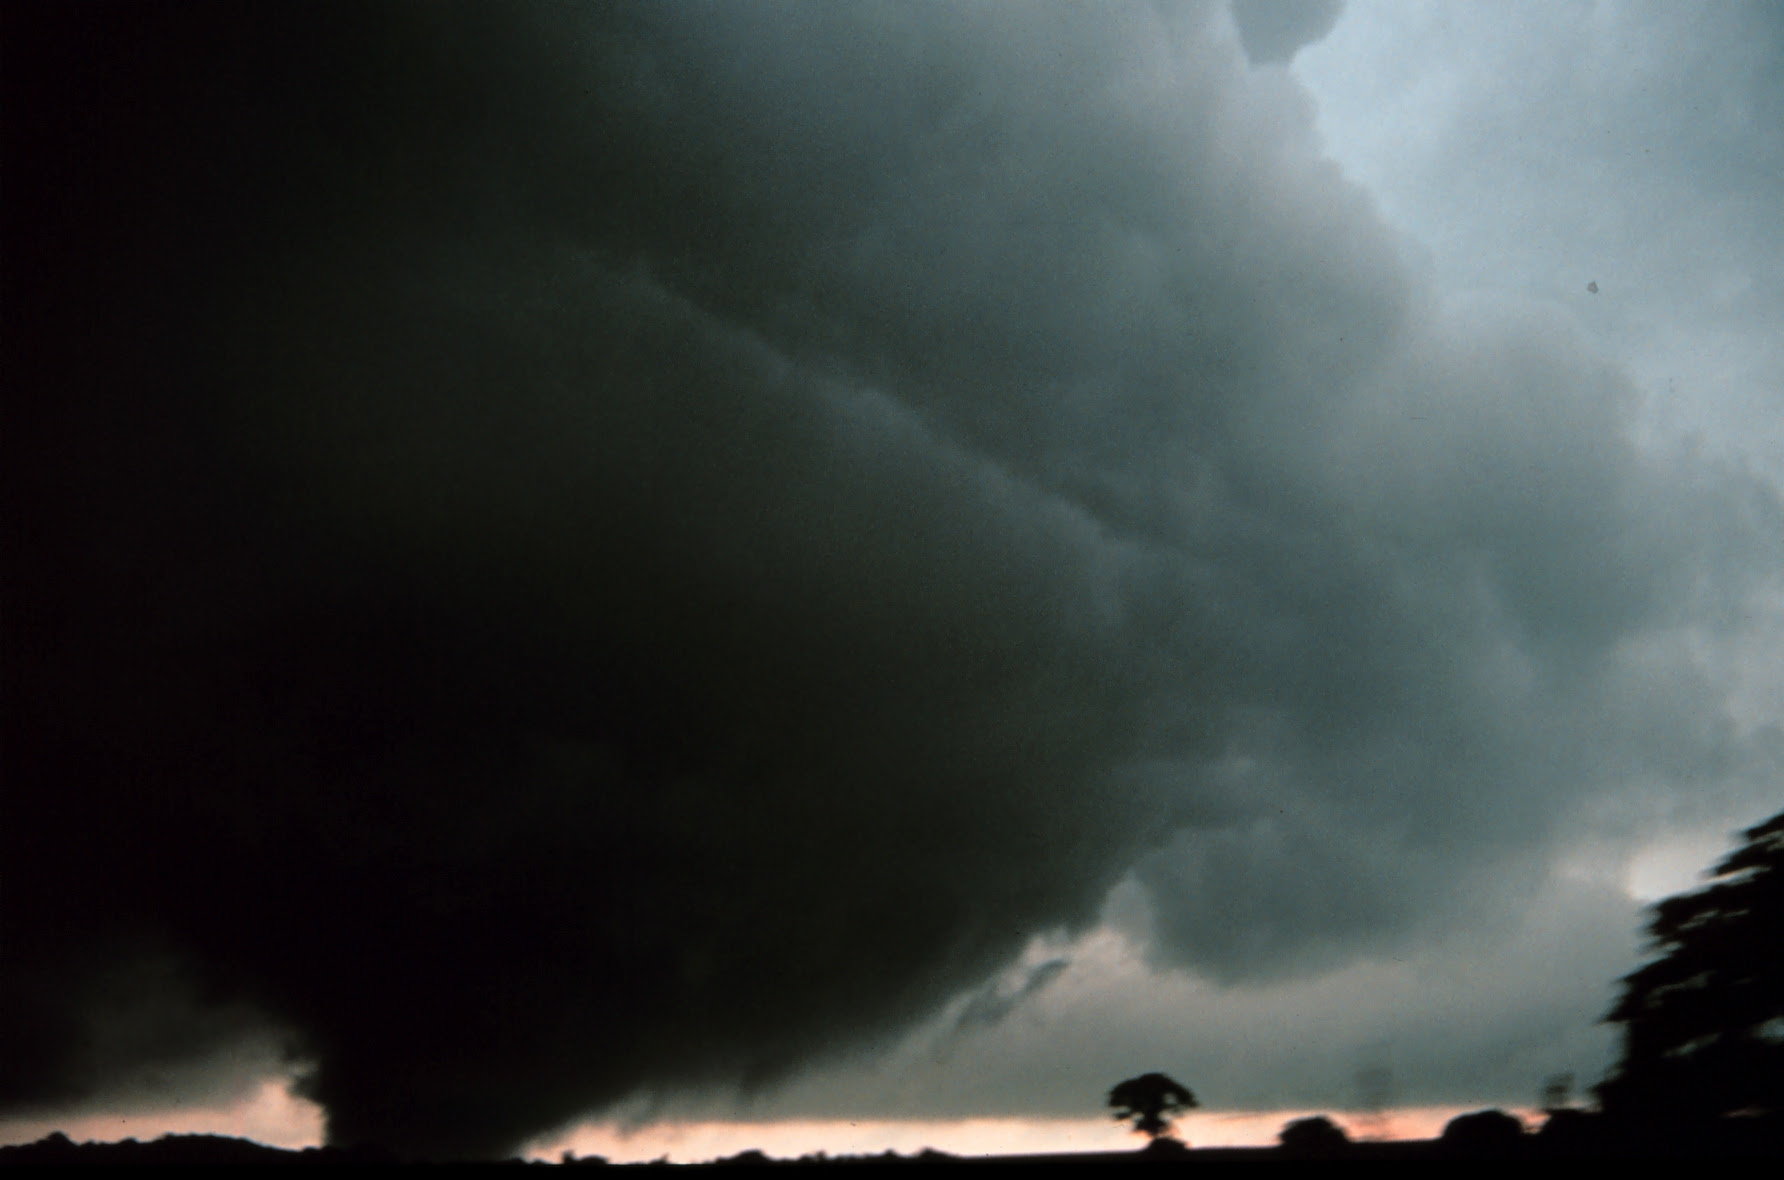 http://upload.wikimedia.org/wikipedia/commons/0/05/Tornado_near_Minco%2C_Oklahoma_-_NOAA.jpg